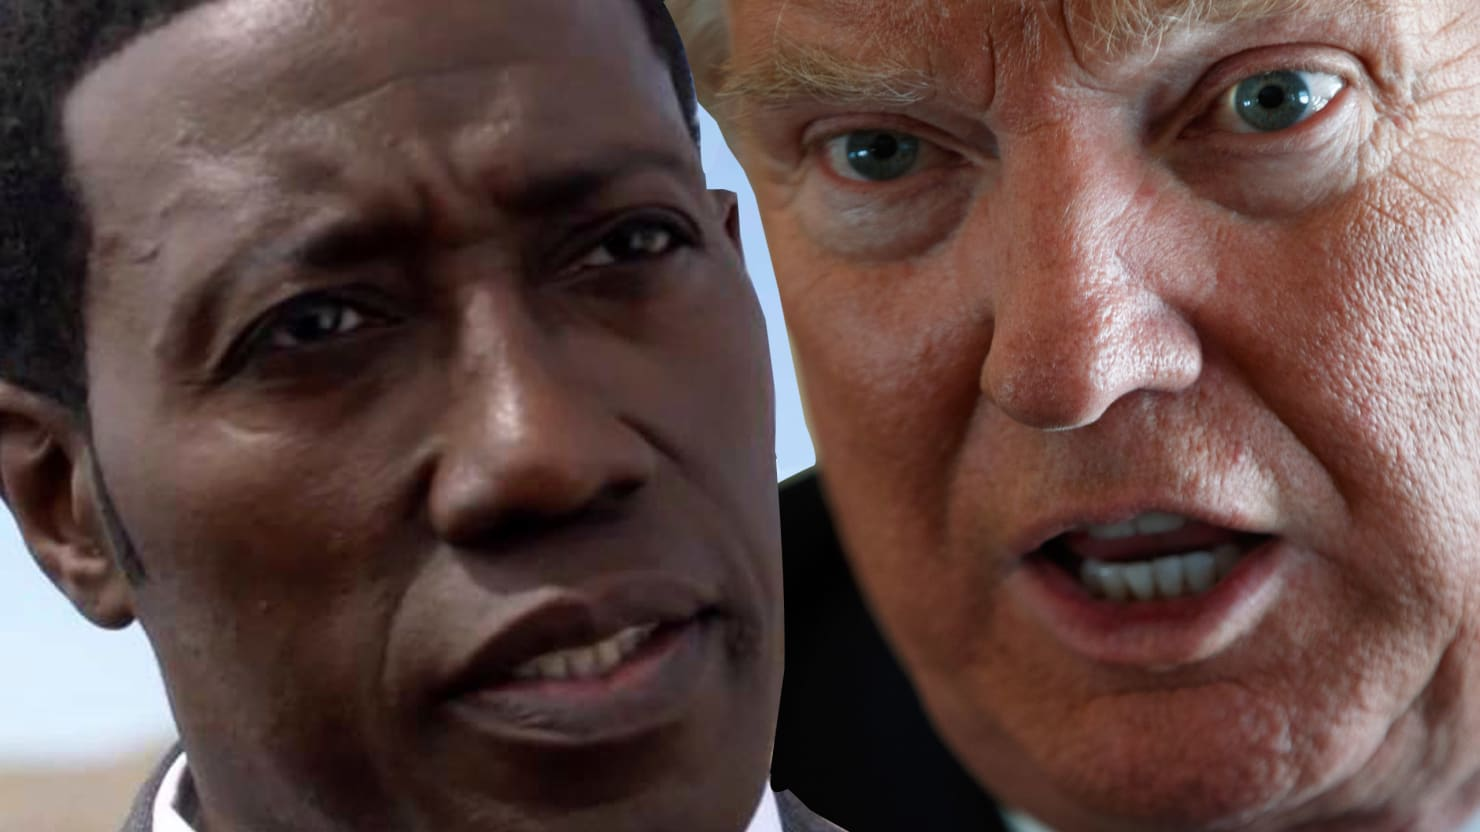 Always Bet On Black Quote: Wesley Snipes, Tax Evader Extraordinaire, Drags Trump Over